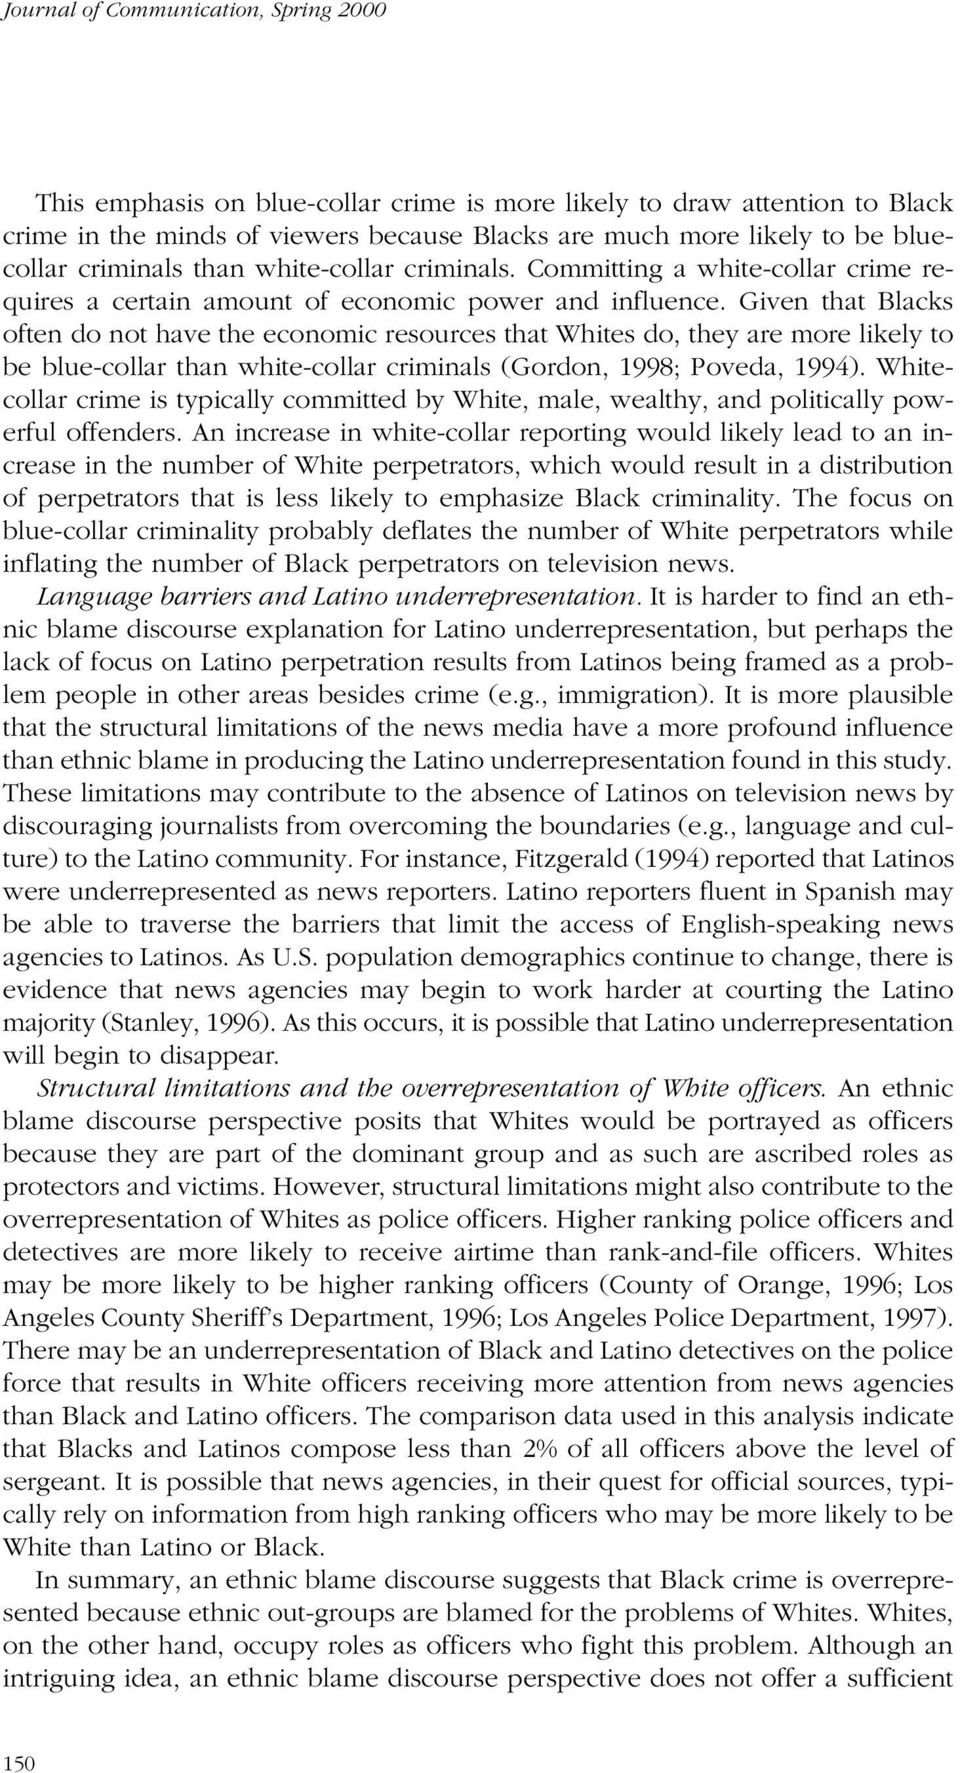 Given that Blacks often do not have the economic resources that Whites do, they are more likely to be blue-collar than white-collar criminals (Gordon, 1998; Poveda, 1994).